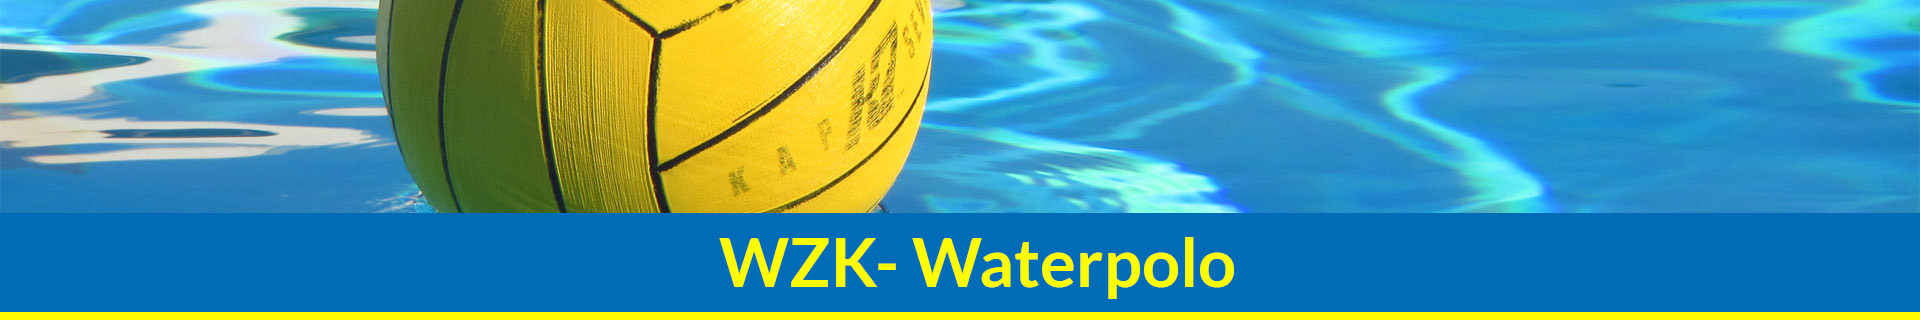 wzk waterpolo banner